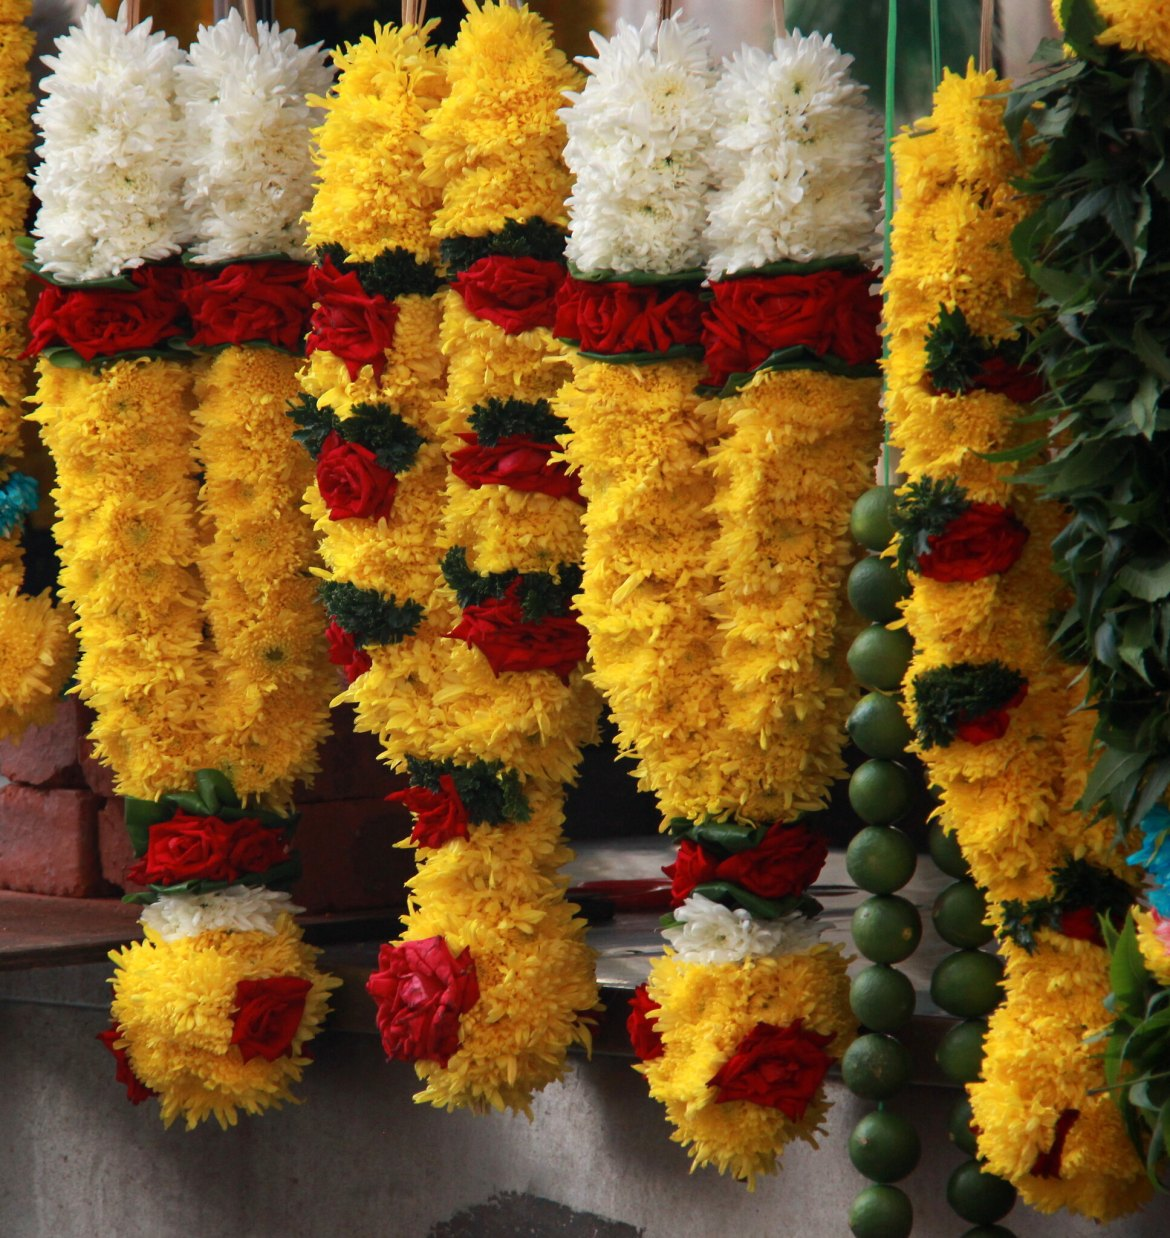 Flower garlands on sale at Little India in Kuala Lumpur